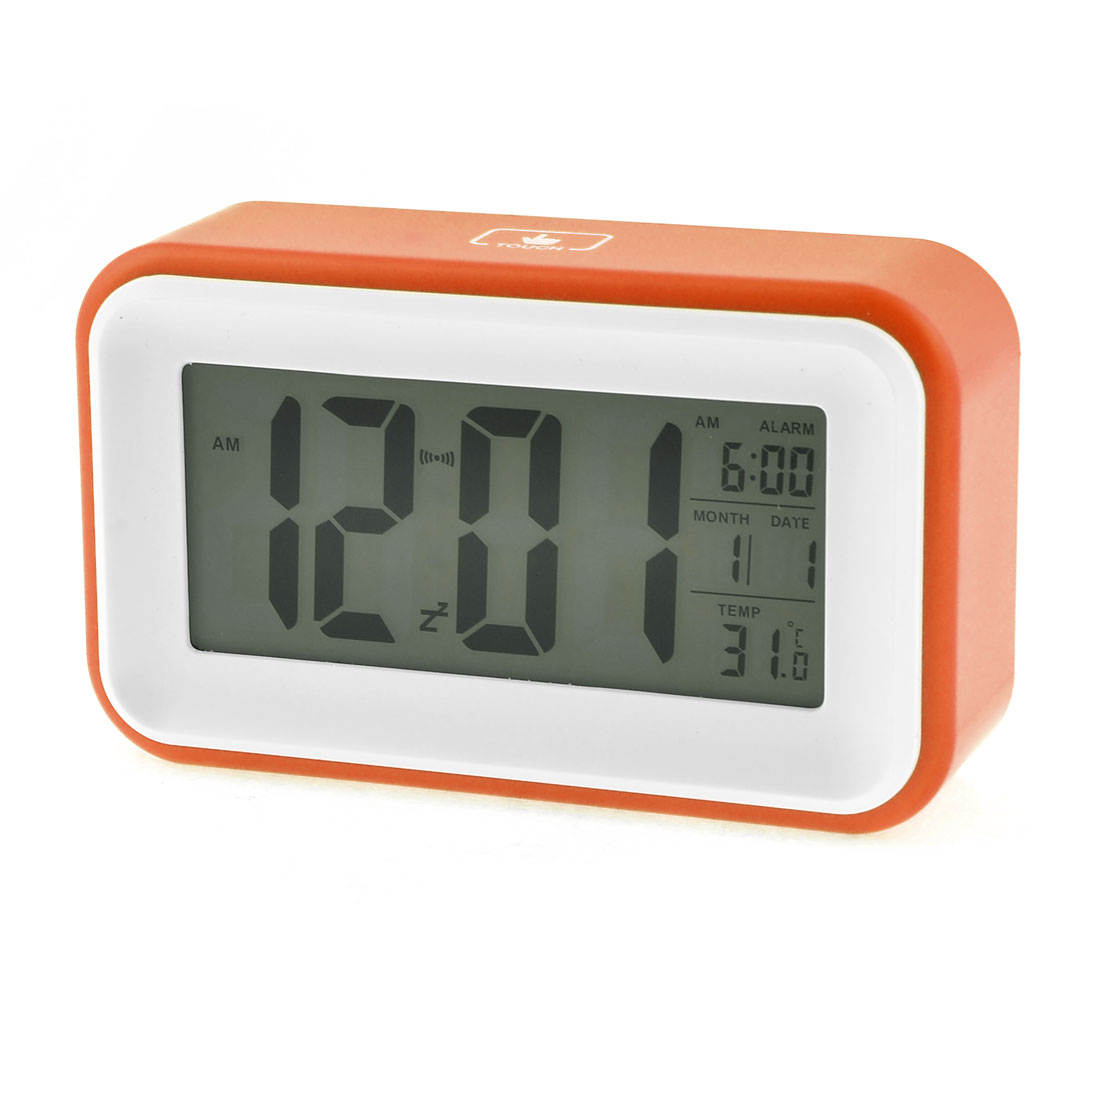 Light Sensor Control Digital LCD White Orange Calendar Alarm Voice Sensor Clock